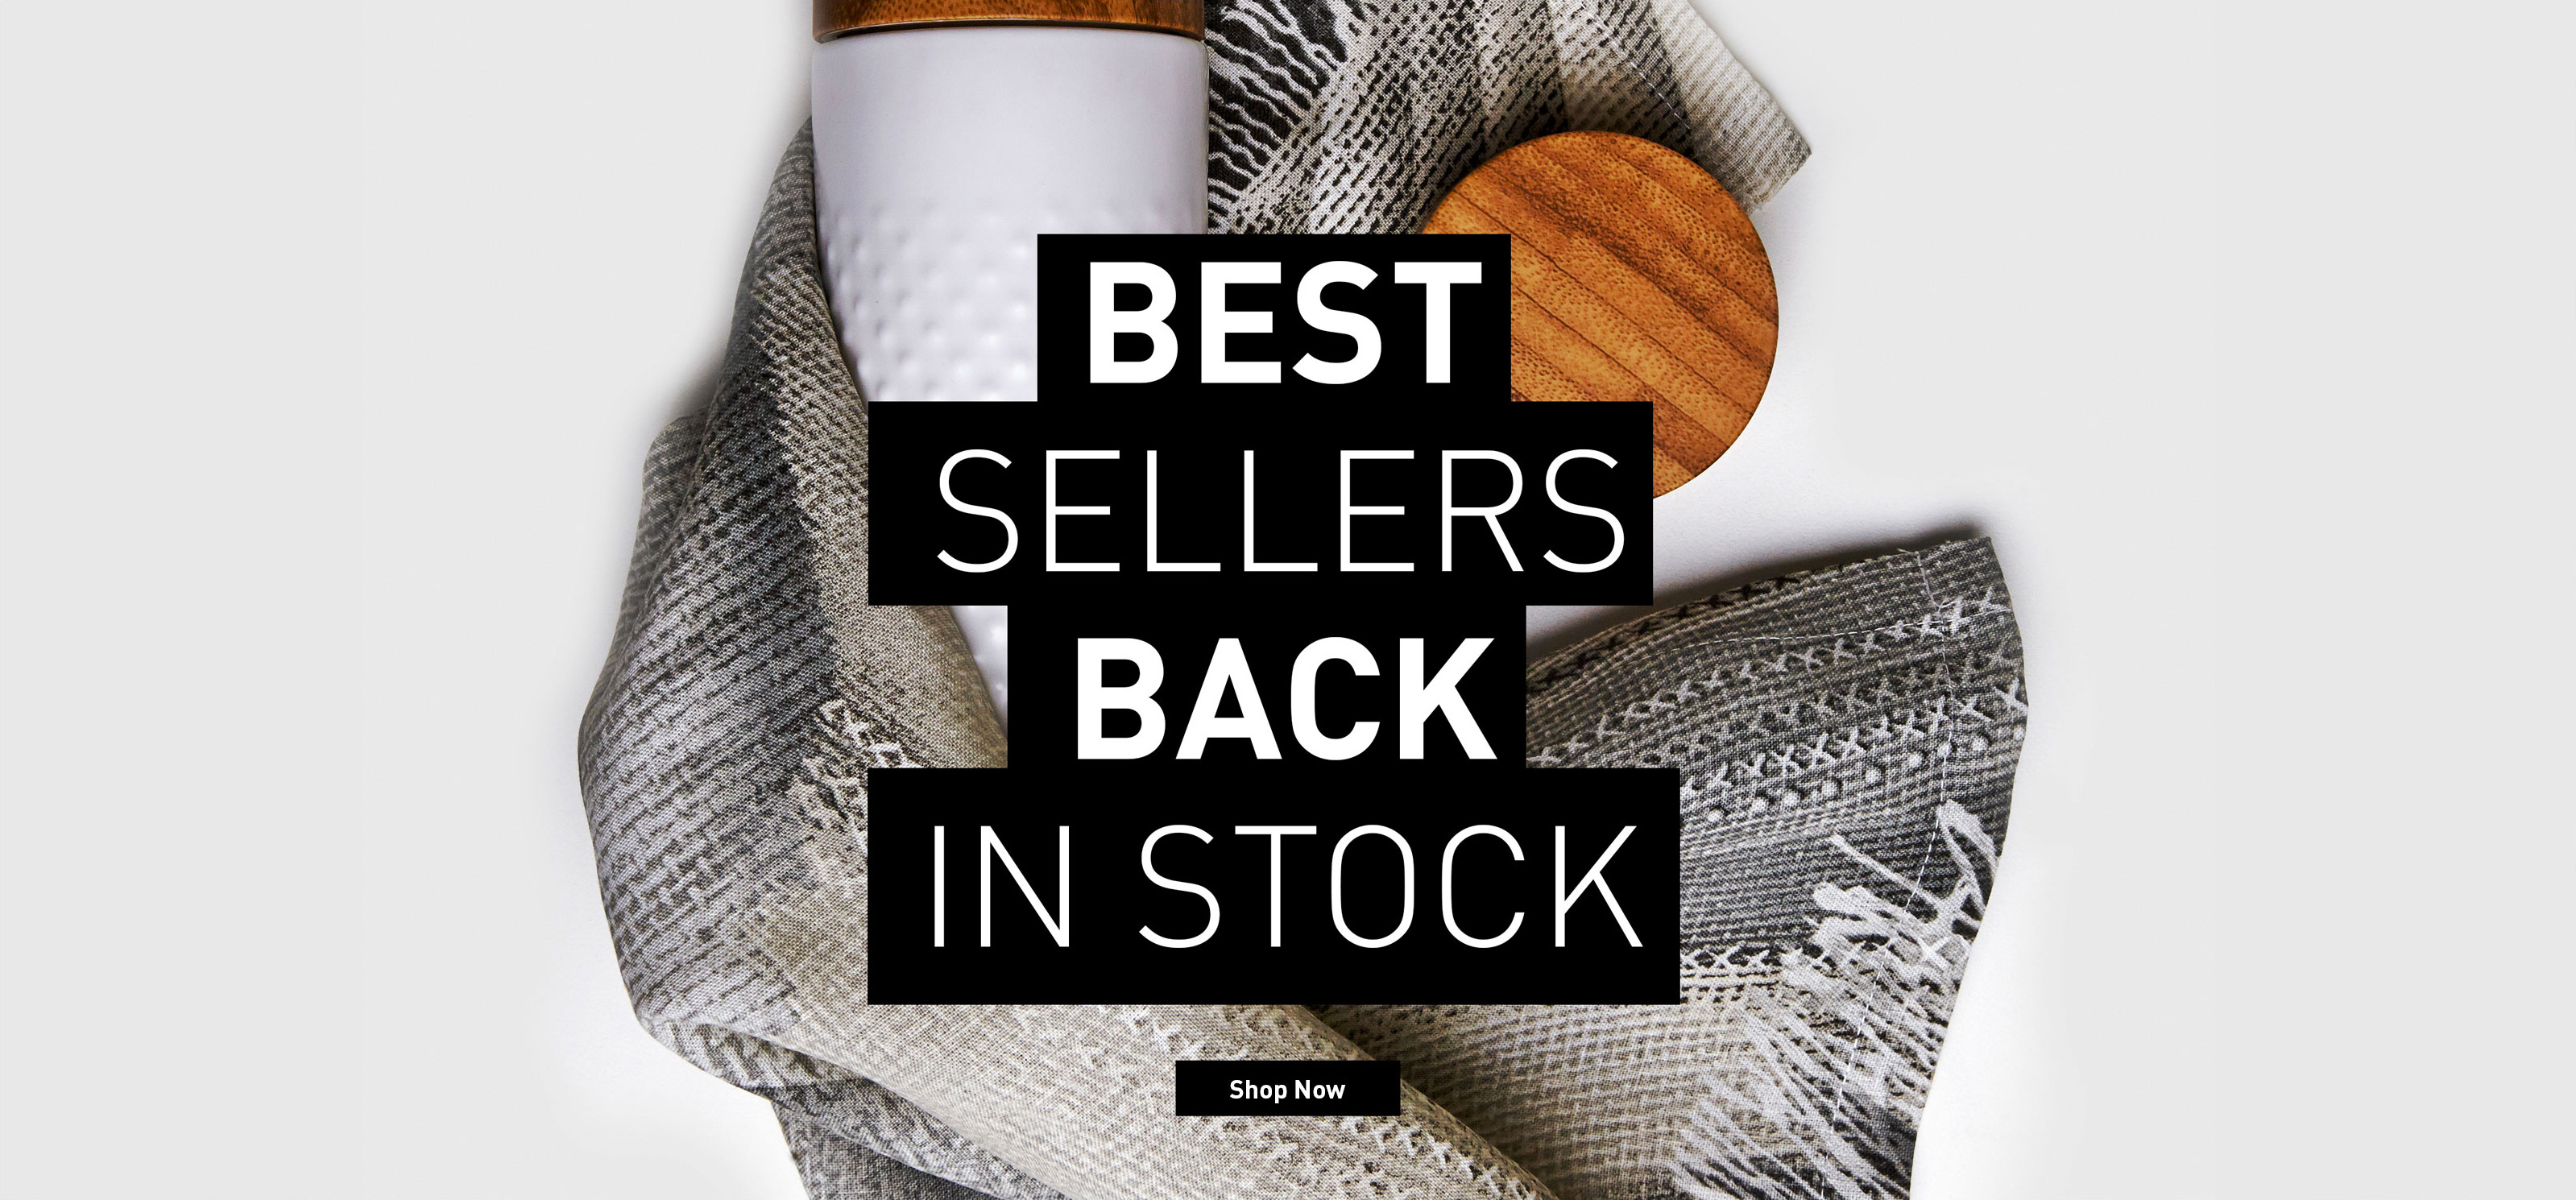 banner-best-sellers-back-in-stock-2020